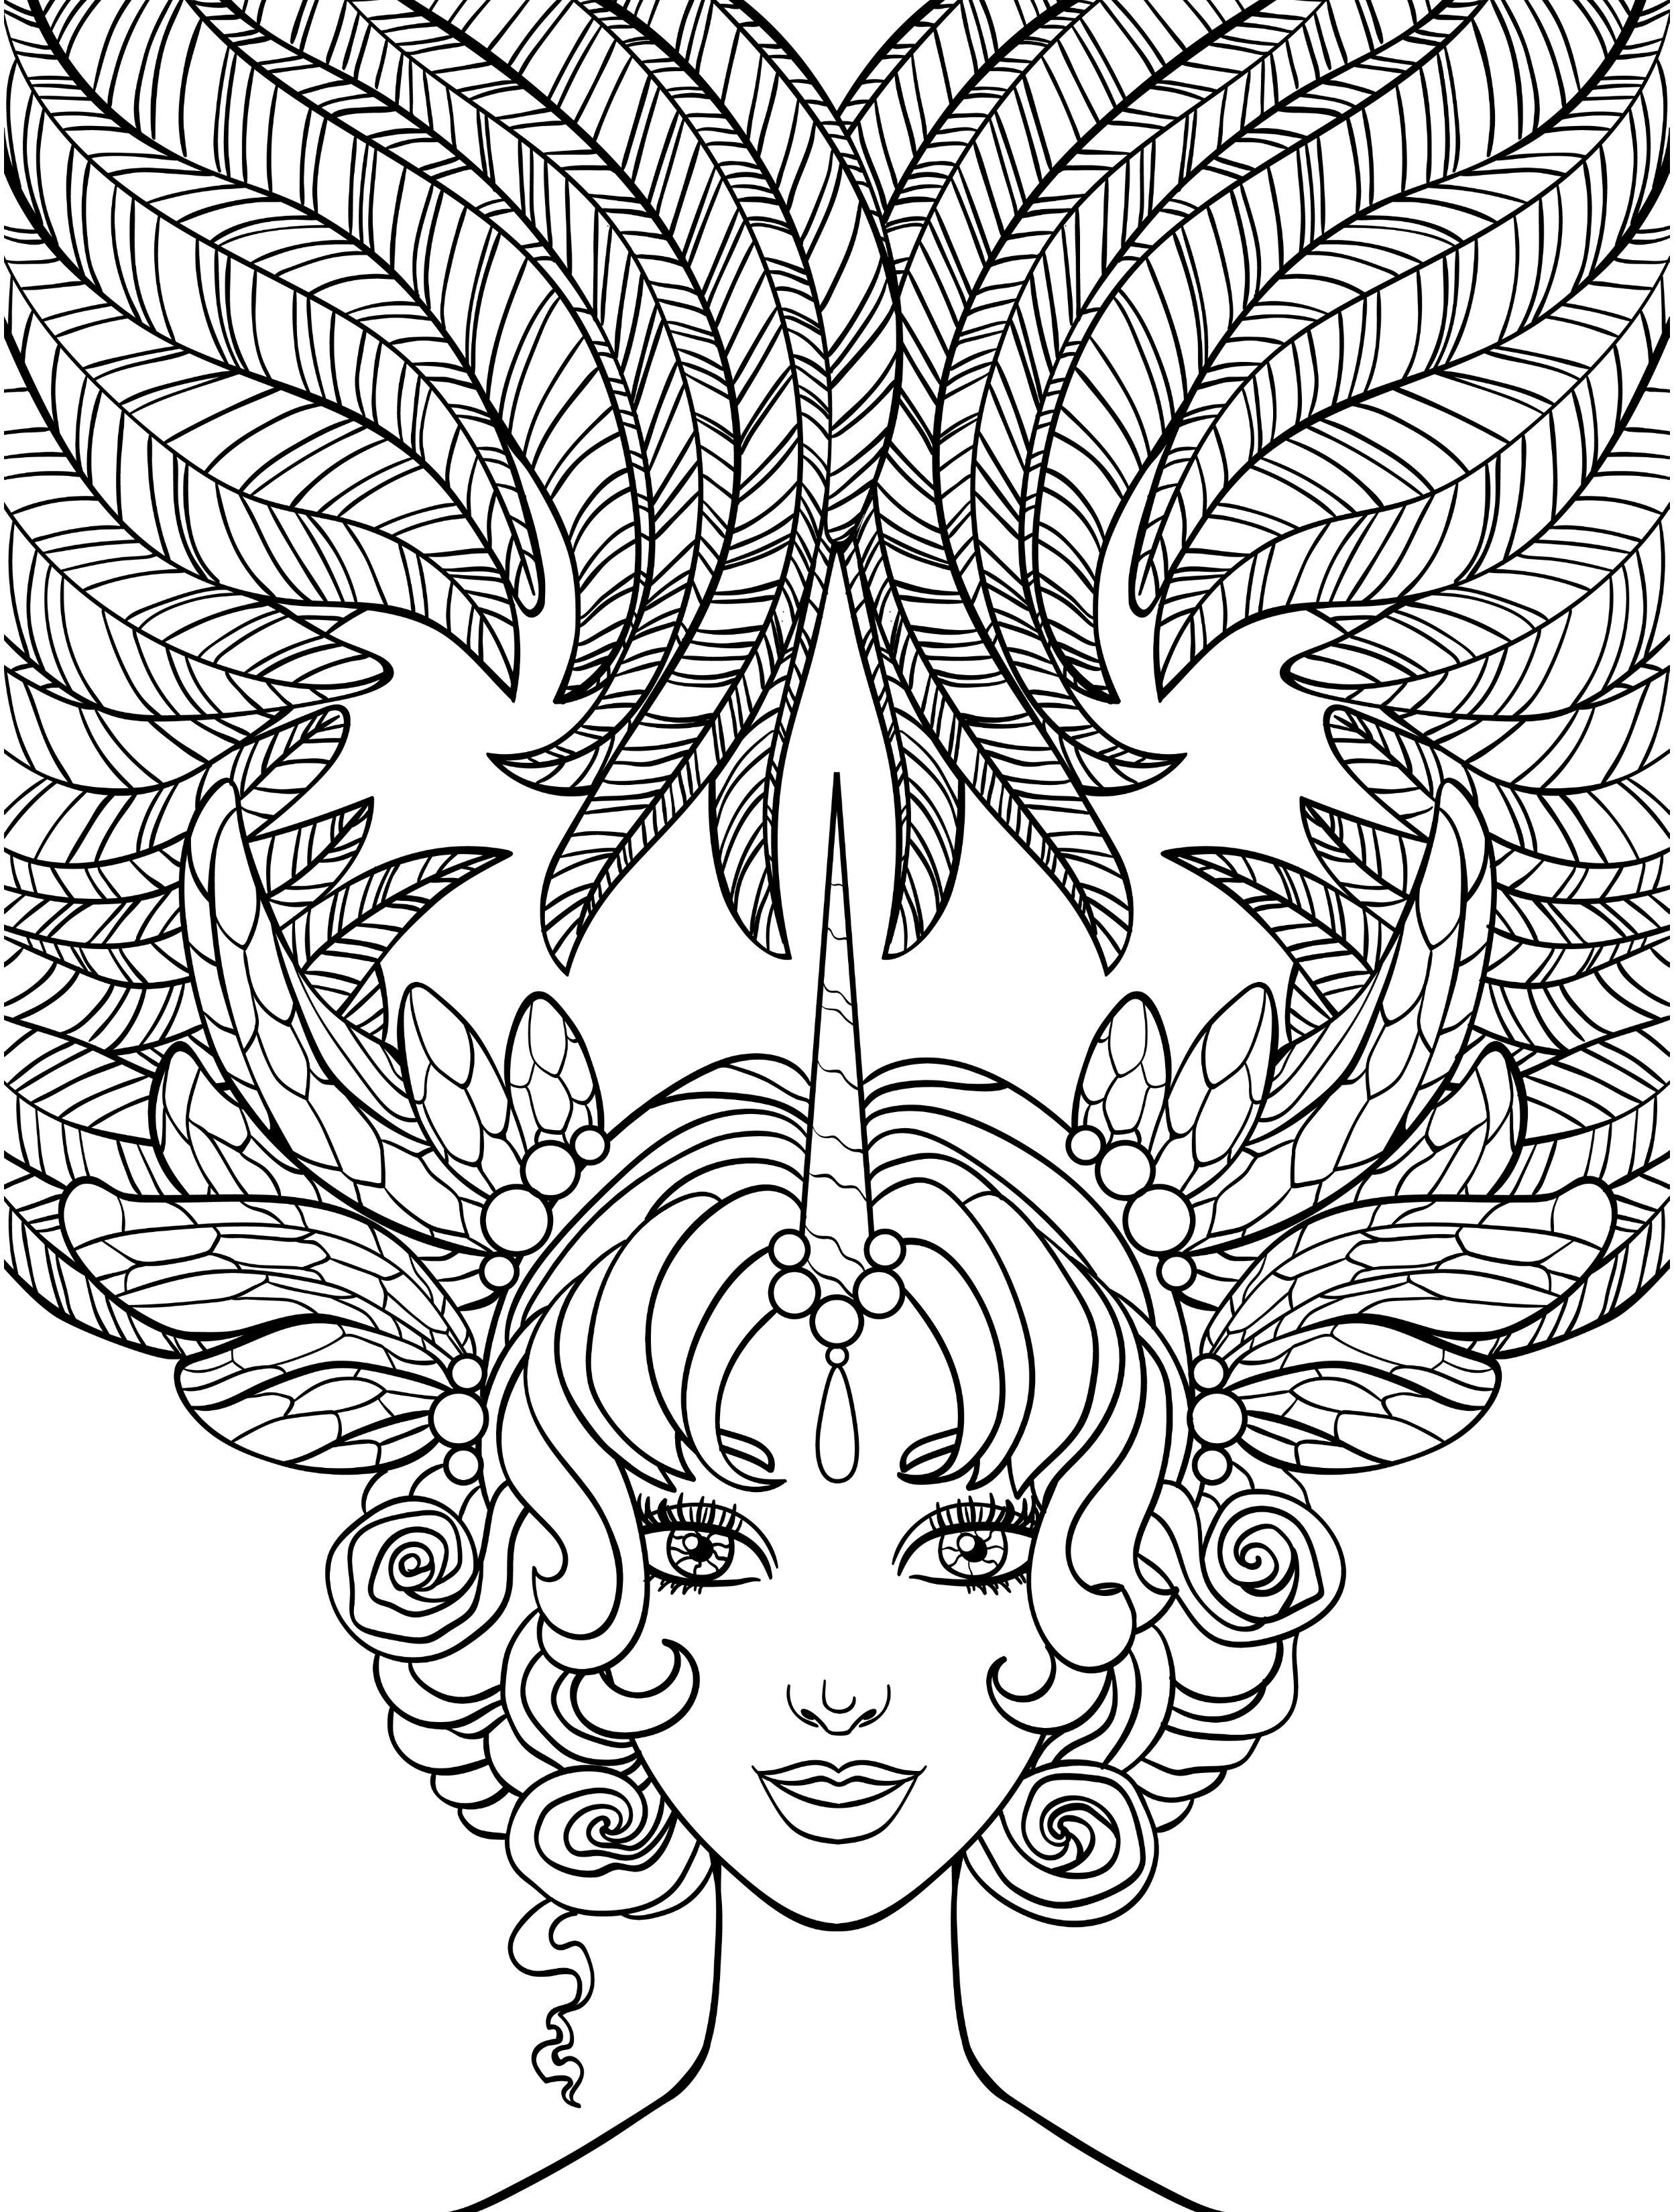 10 Crazy Hair Adult Coloring Pages | coloring pages ...